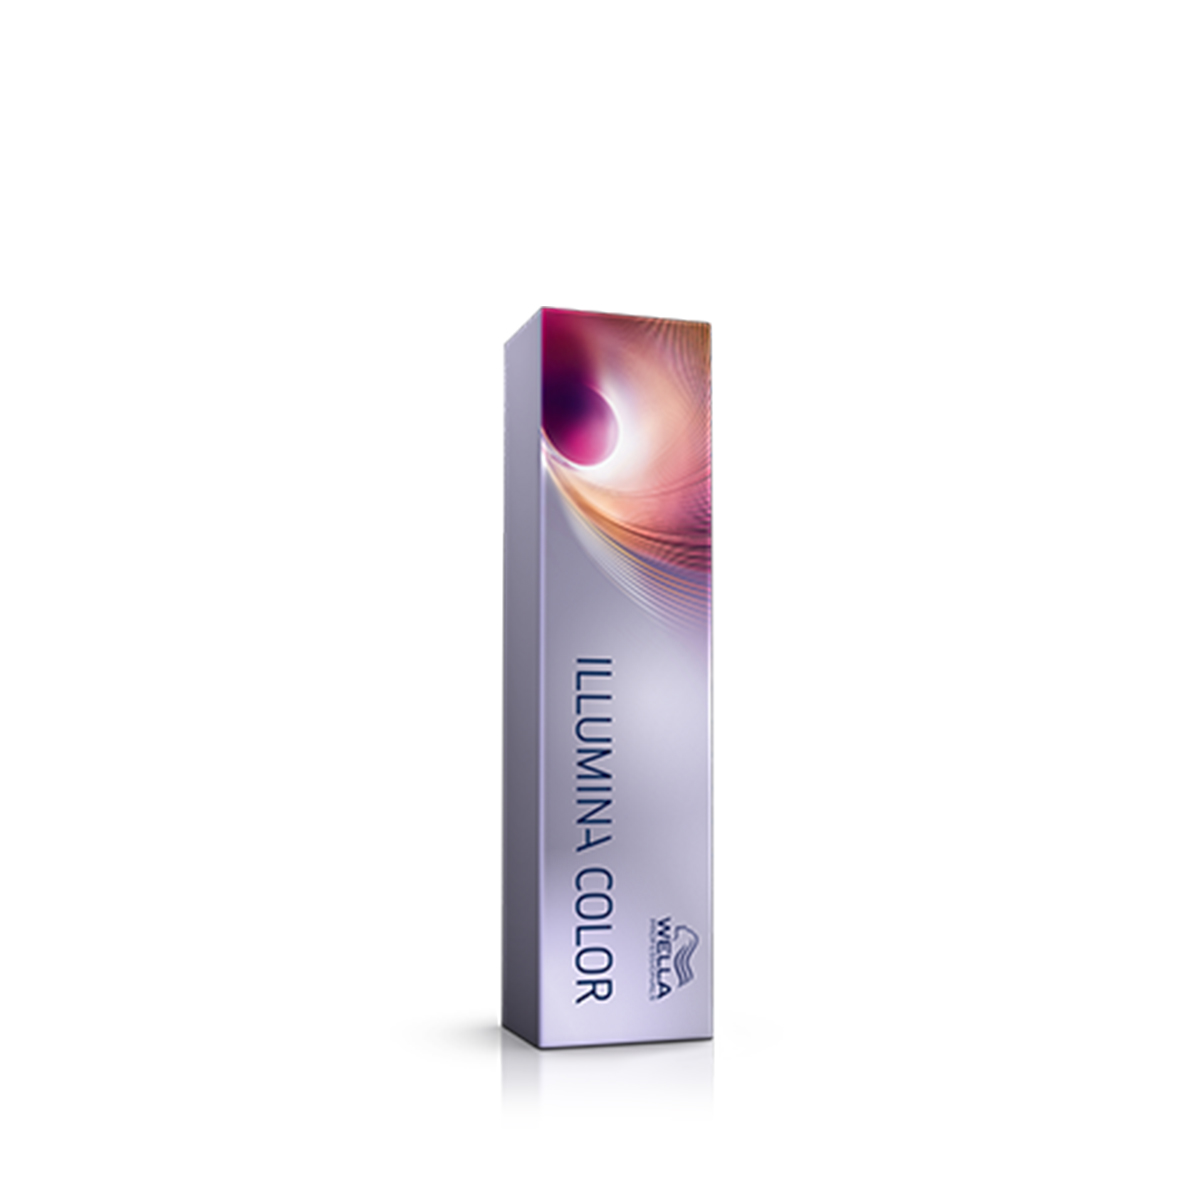 Illumina Color 60 Ml Biondo Scuro Cenere Cendre'